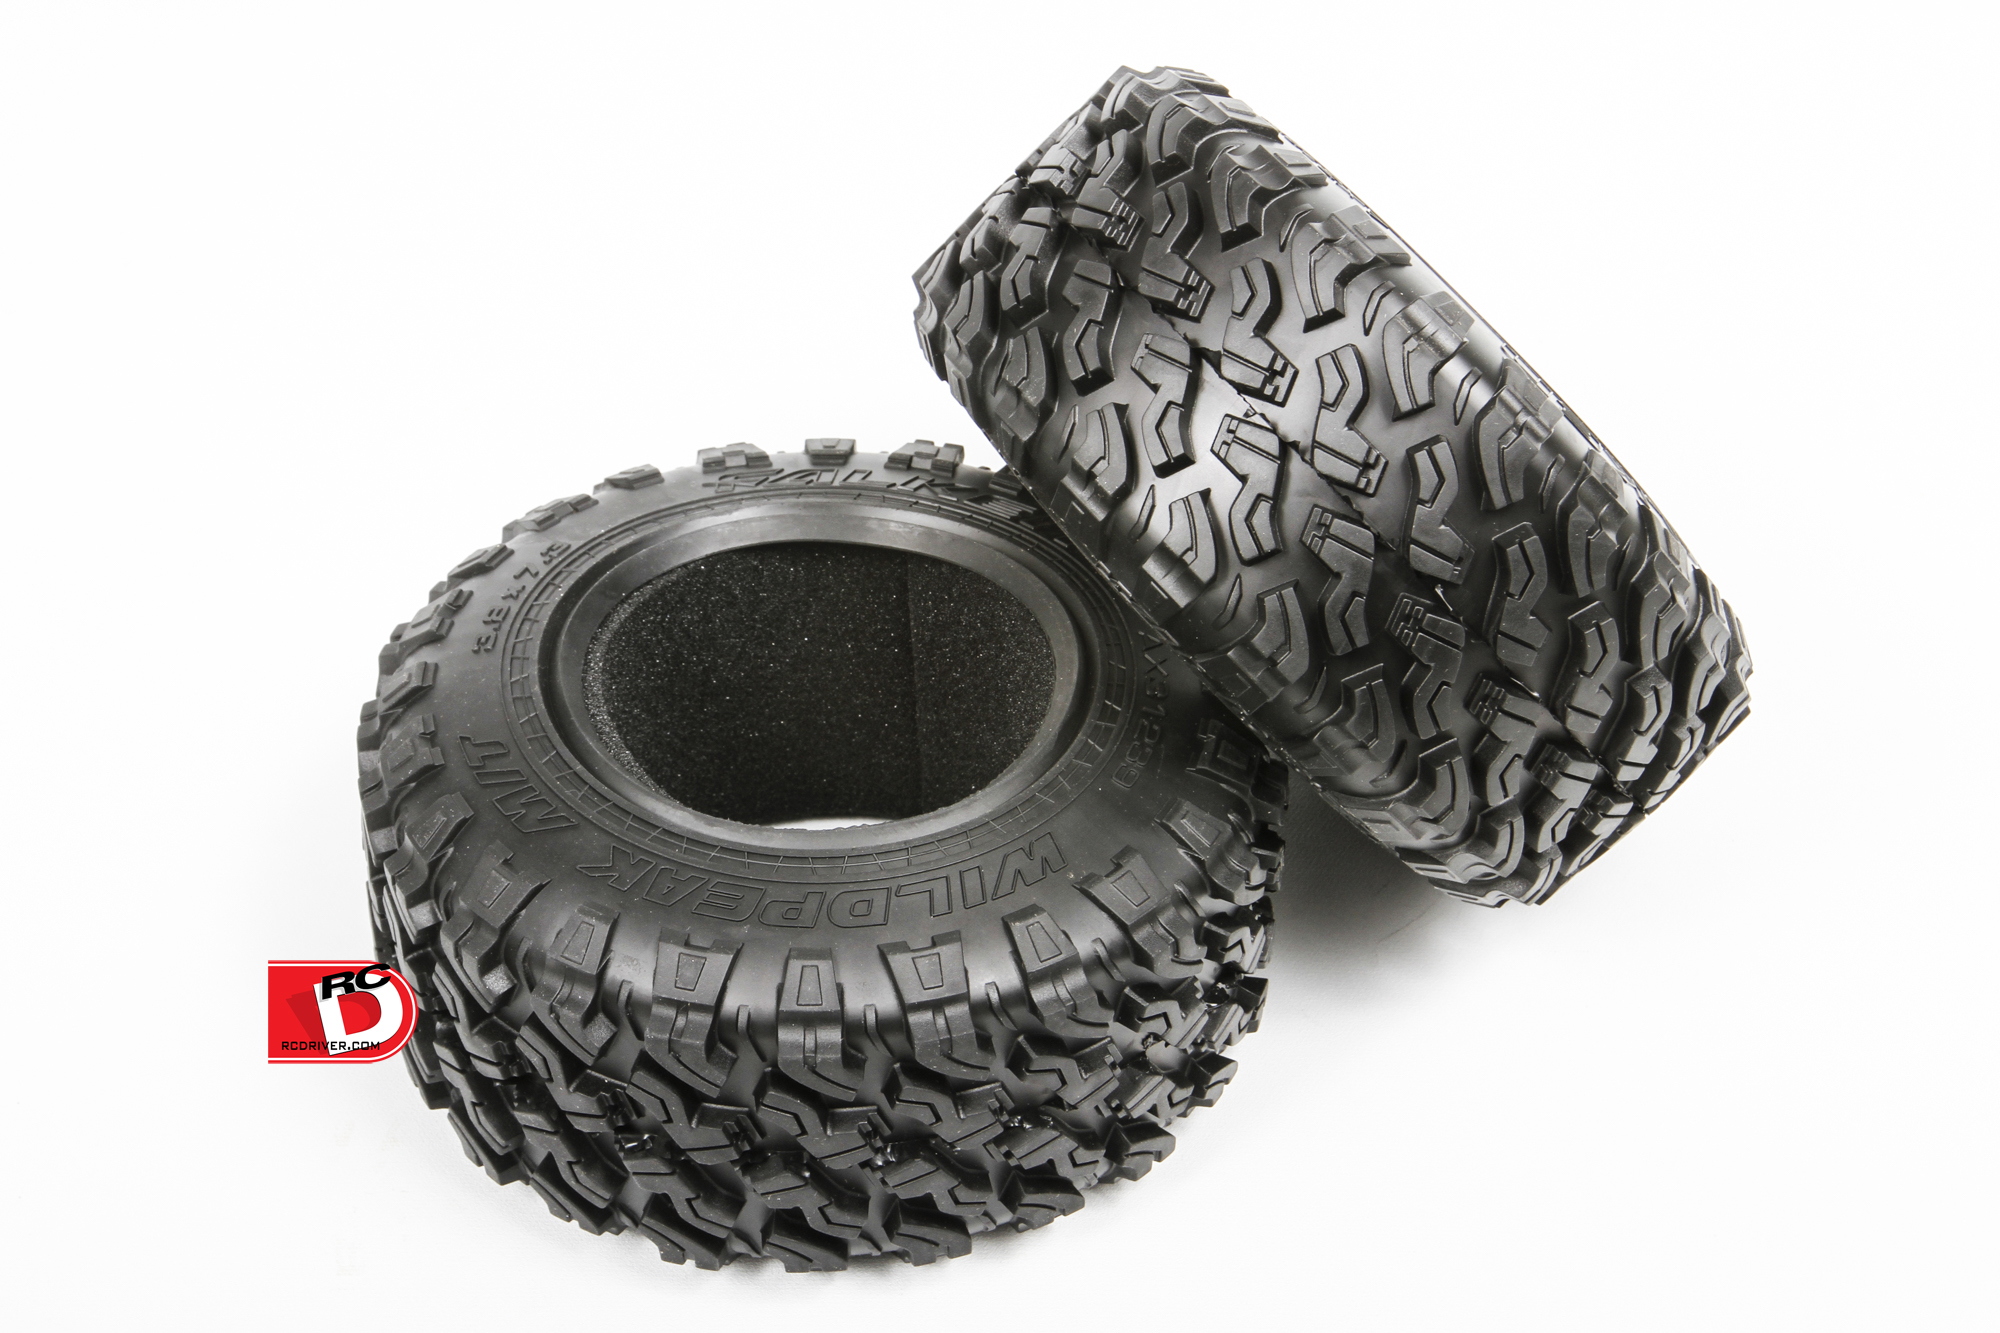 Axial Racing - 3.8 Falken Wildpeak M-T - R35 Compound Tires